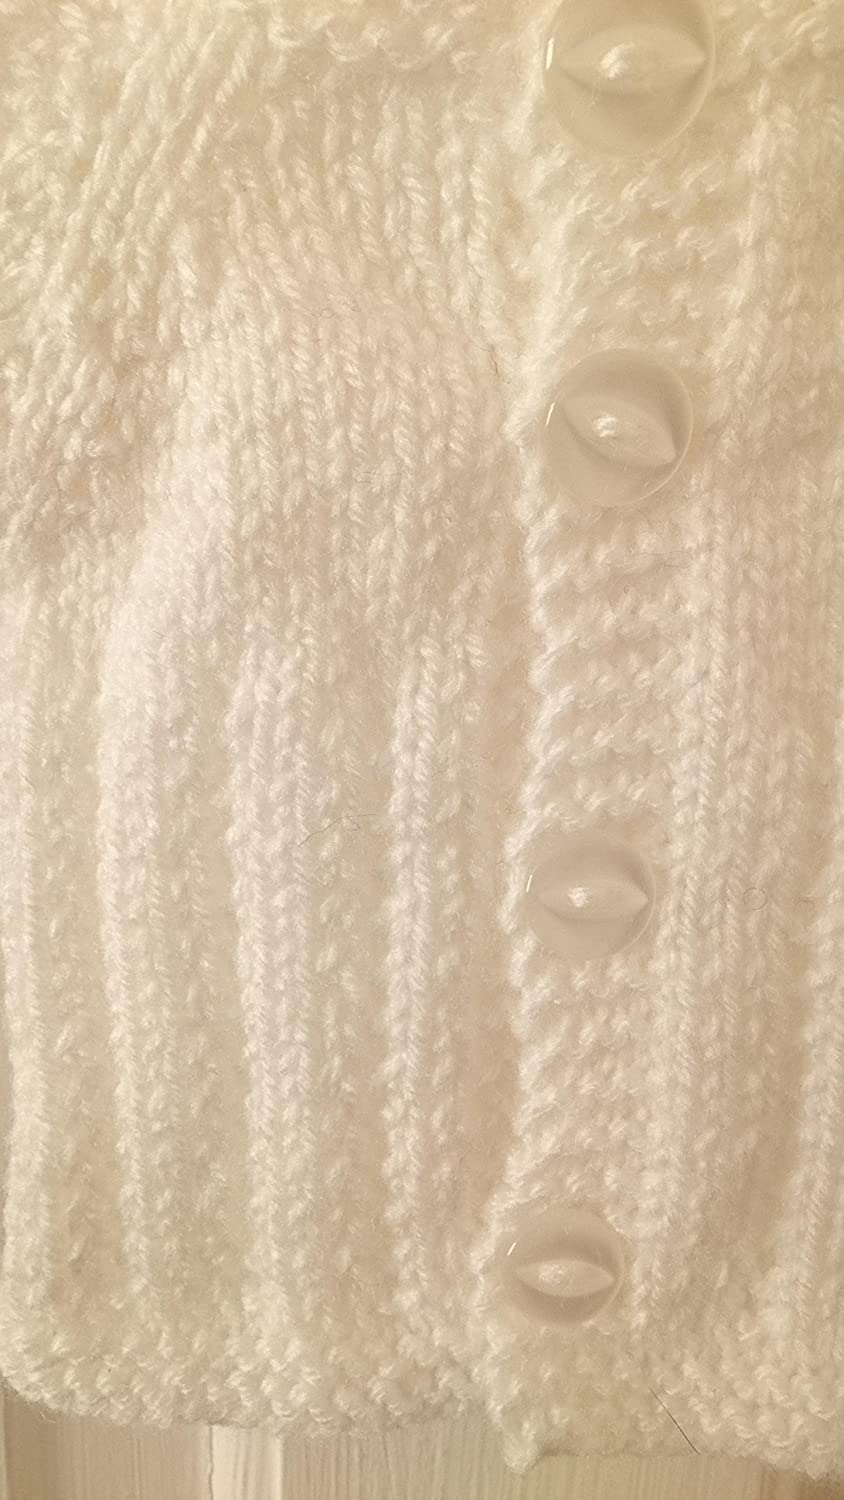 in white low birth weight baby or baby doll. in the tiniest of sizes precious preemie round neck long sleeved cardigan Harlow Will fit premature baby